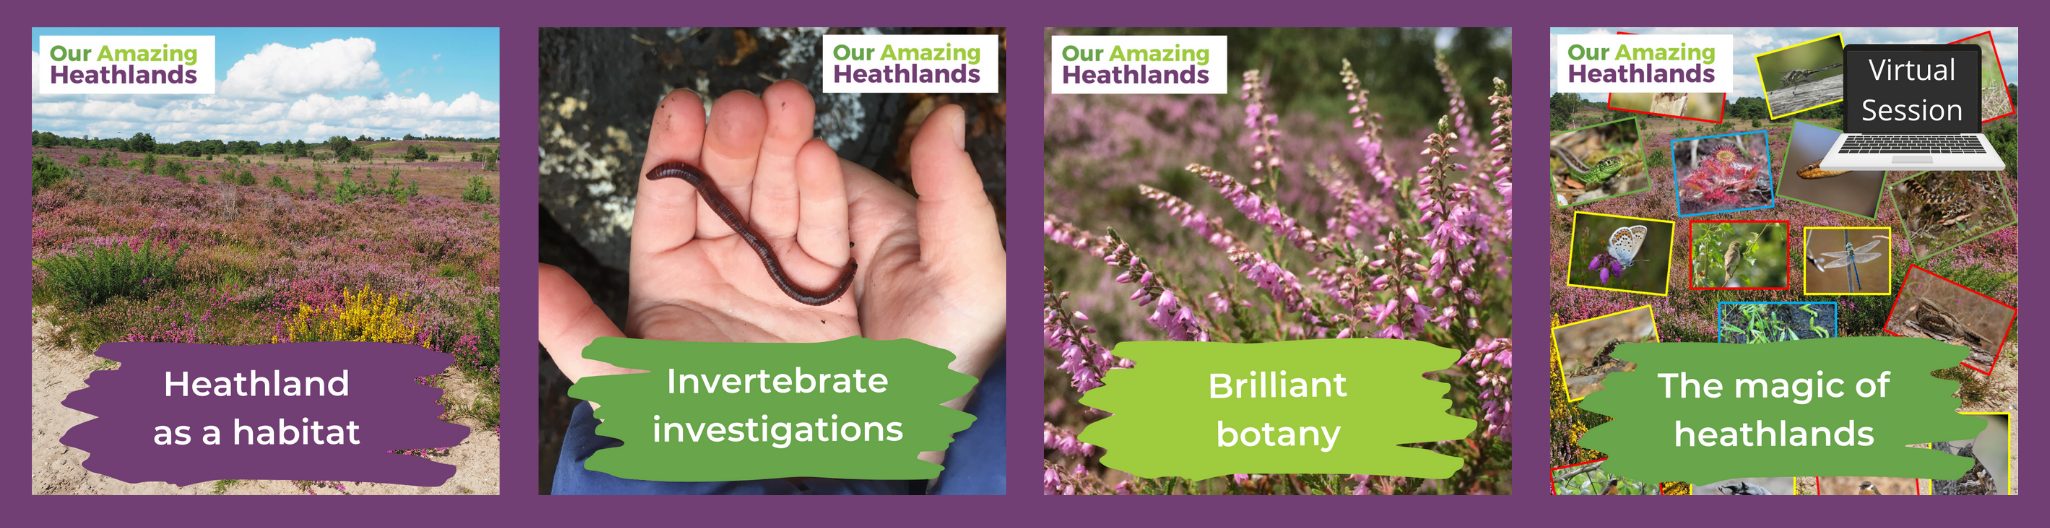 A pictoral overview of heathland sessions available